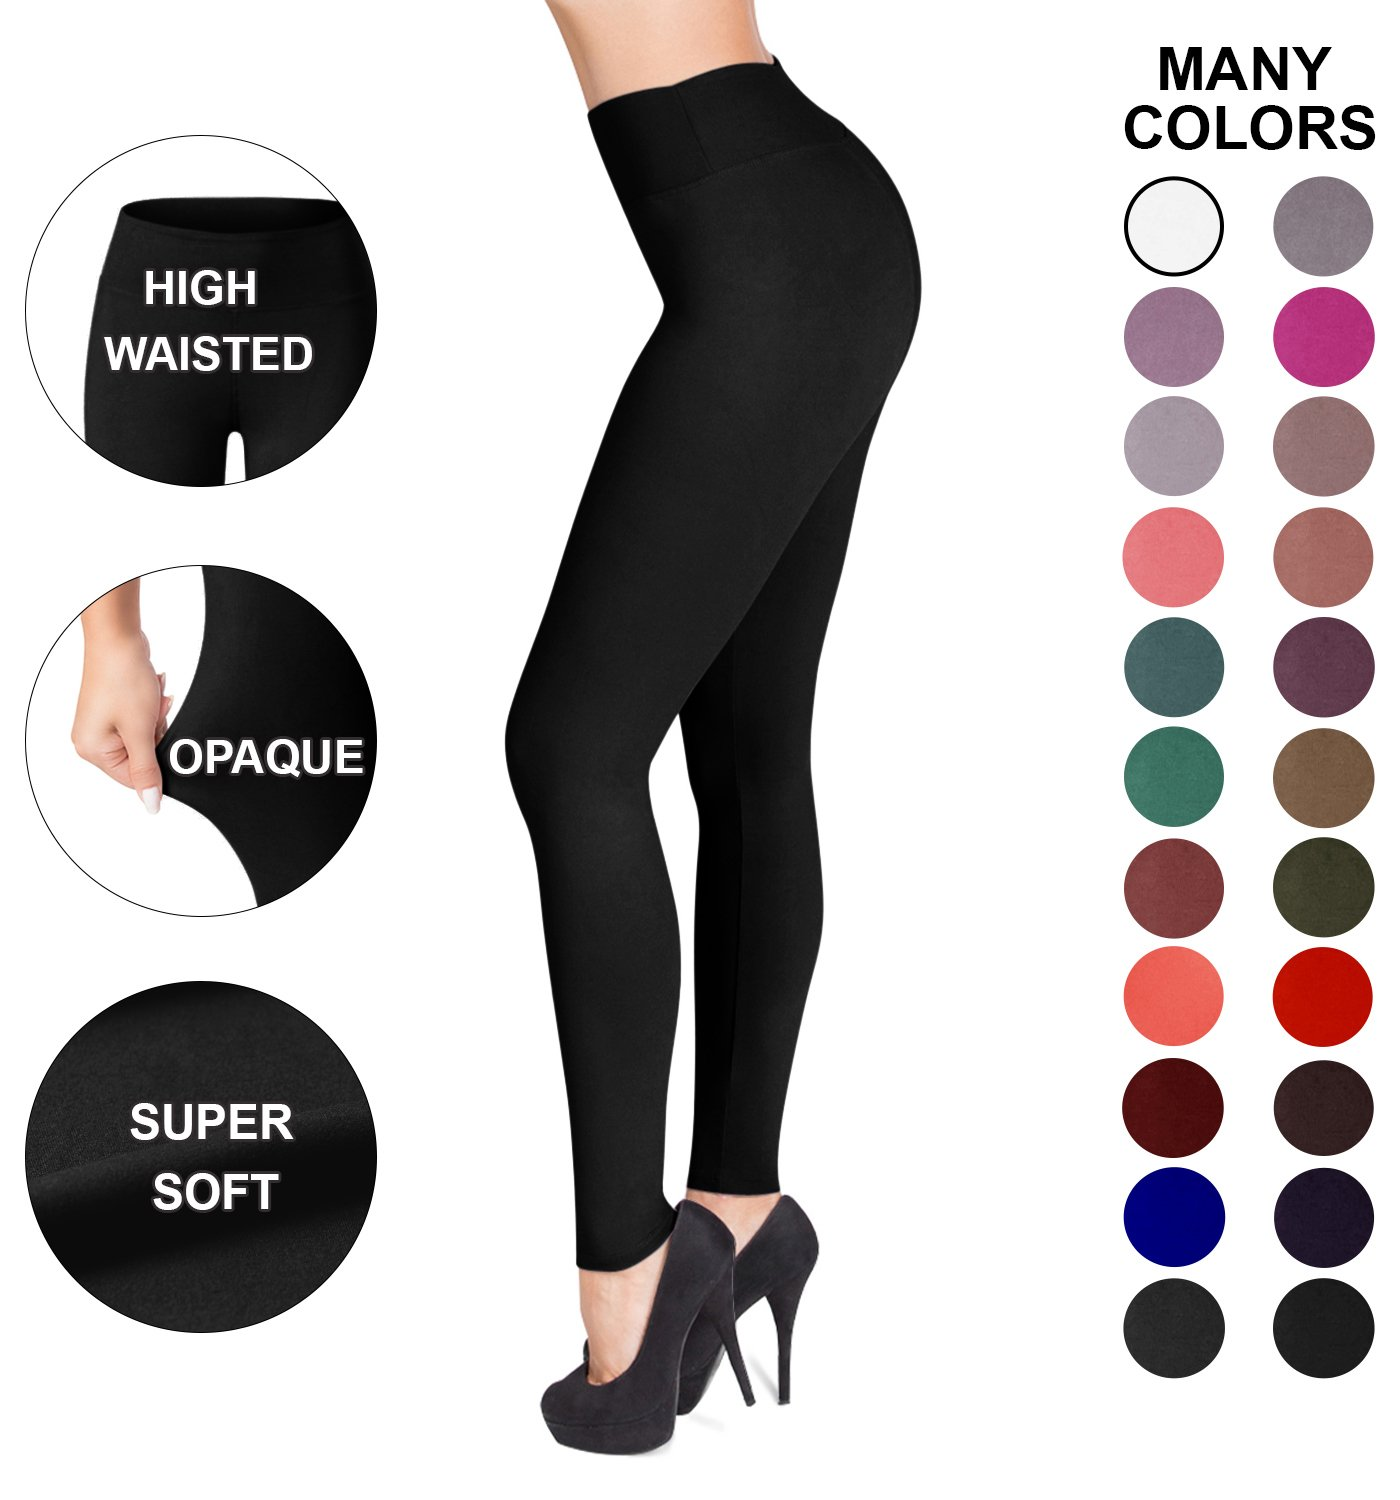 SATINA High Waisted Leggings – 22 Colors – Super Soft Full Length Opaque Slim (Plus Size, Black)